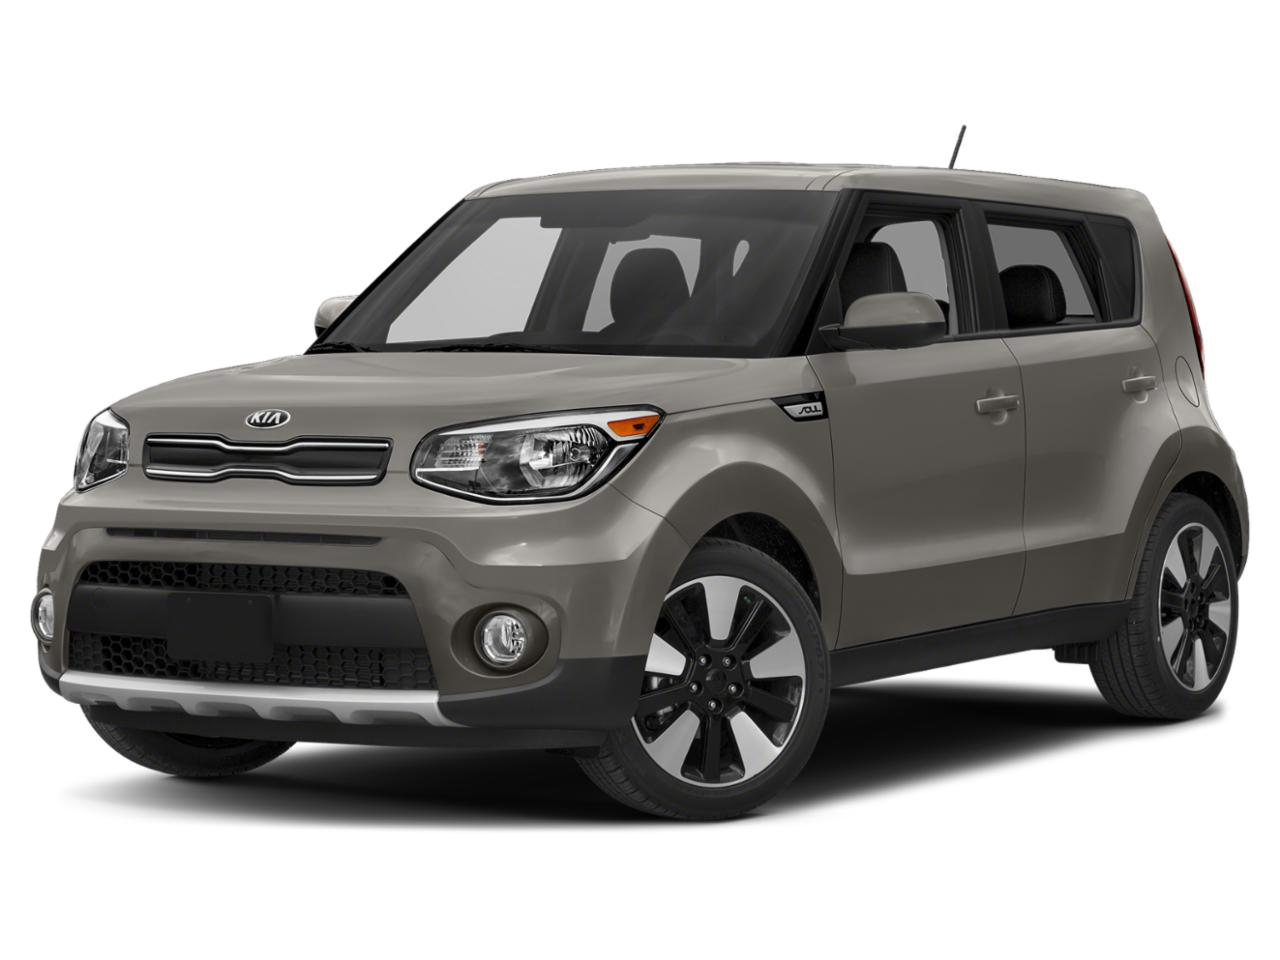 2019 Kia Soul Vehicle Photo in Baton Rouge, LA 70806